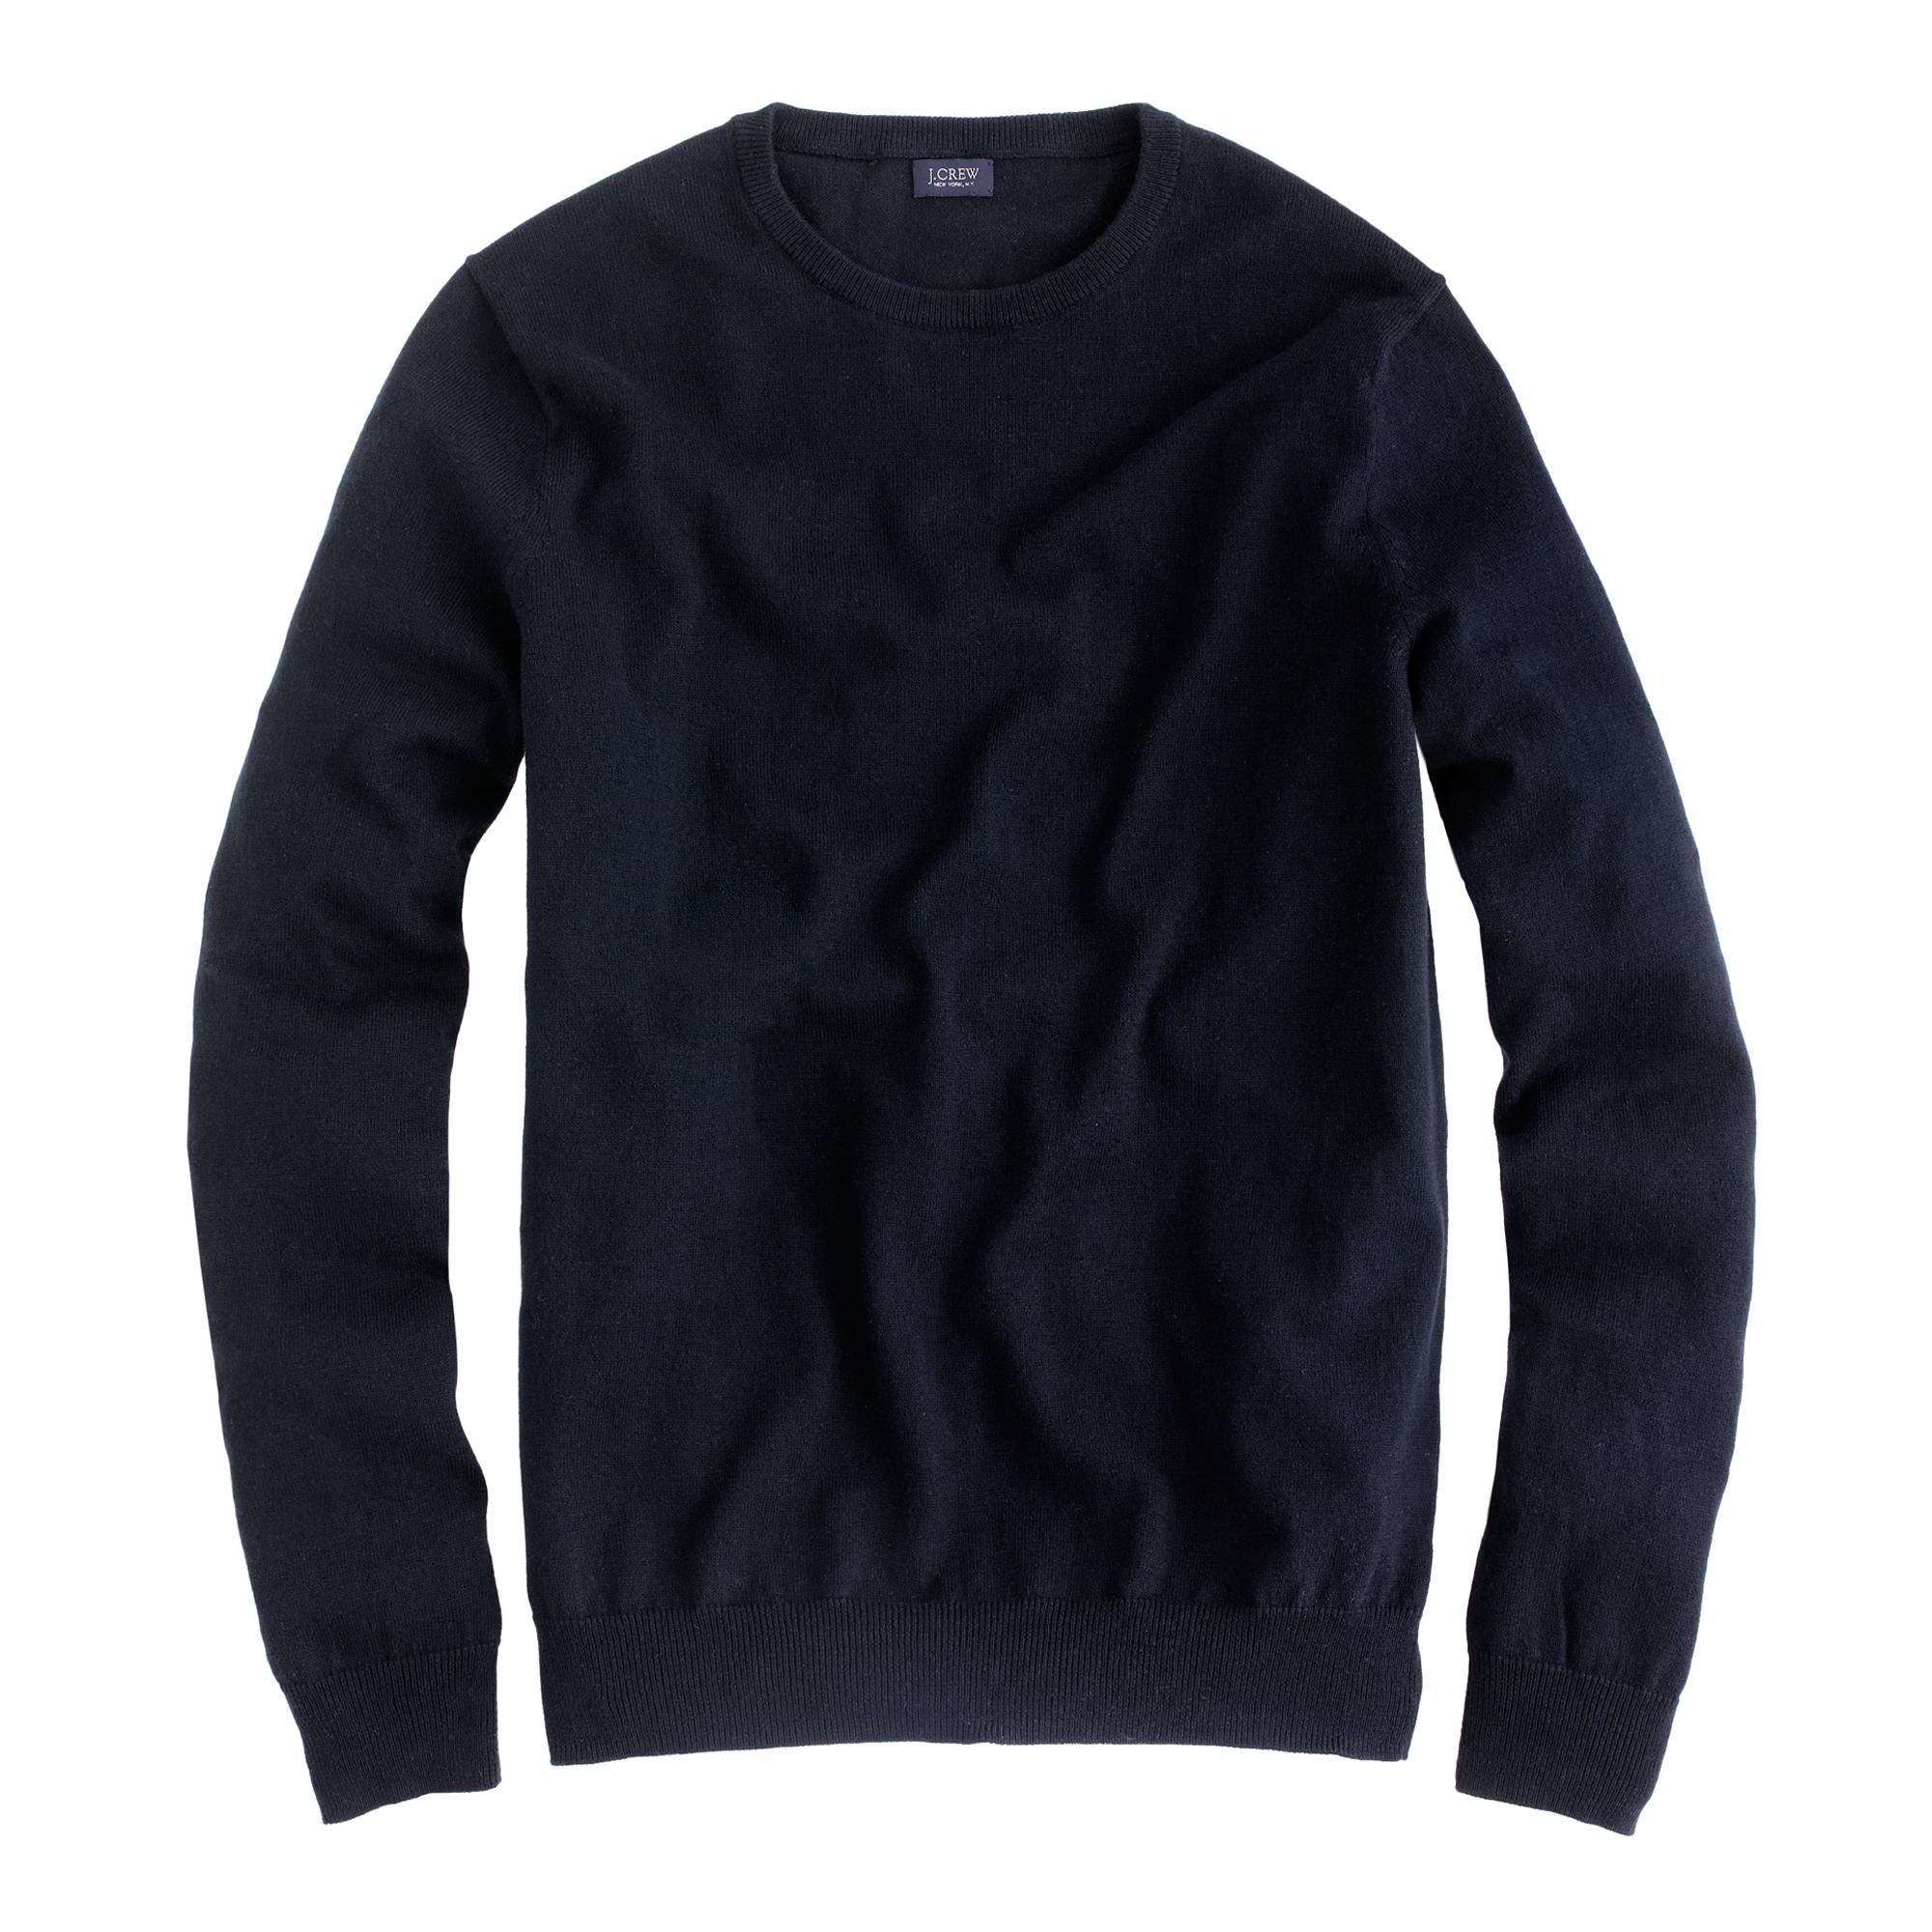 Try our Men's Cotton Cashmere Crewneck Sweater at Lands' End. Everything we sell is Guaranteed. Period.® Since